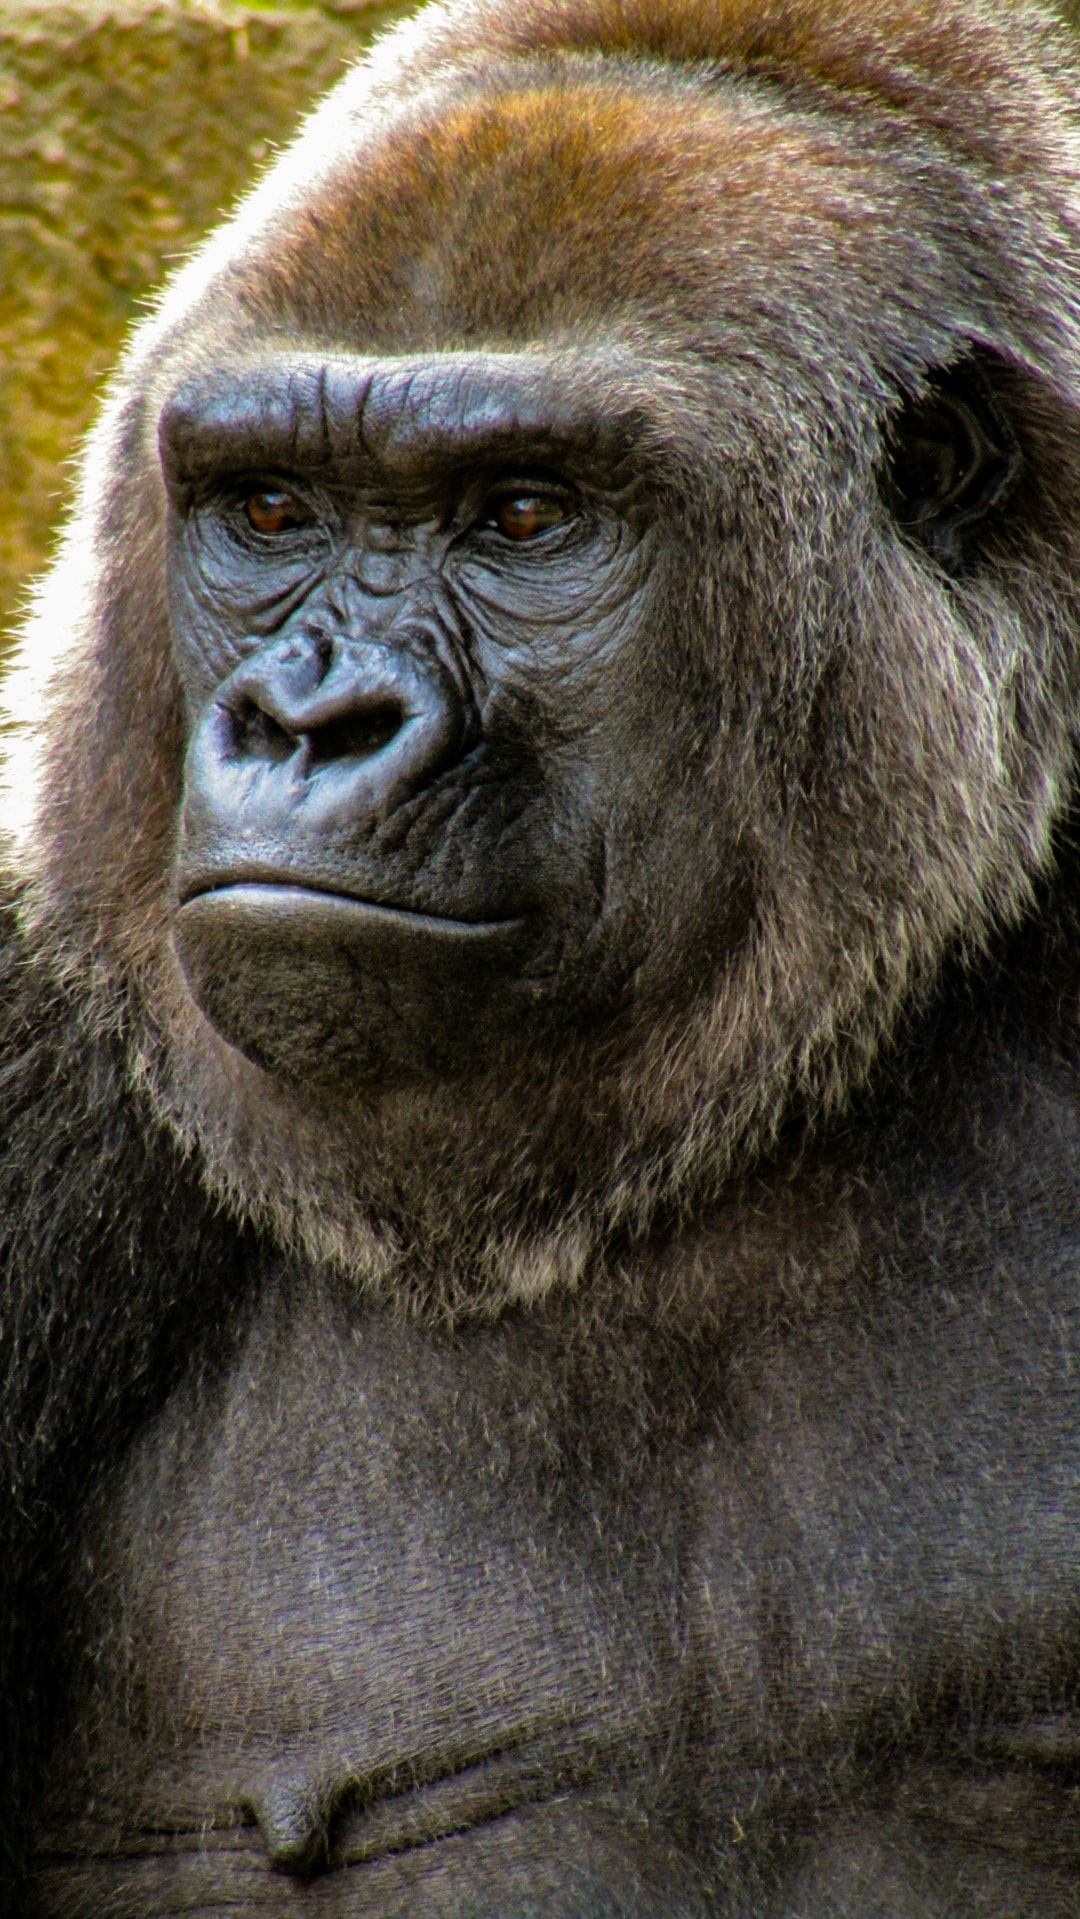 A gorilla sits still for a photo to be taken.